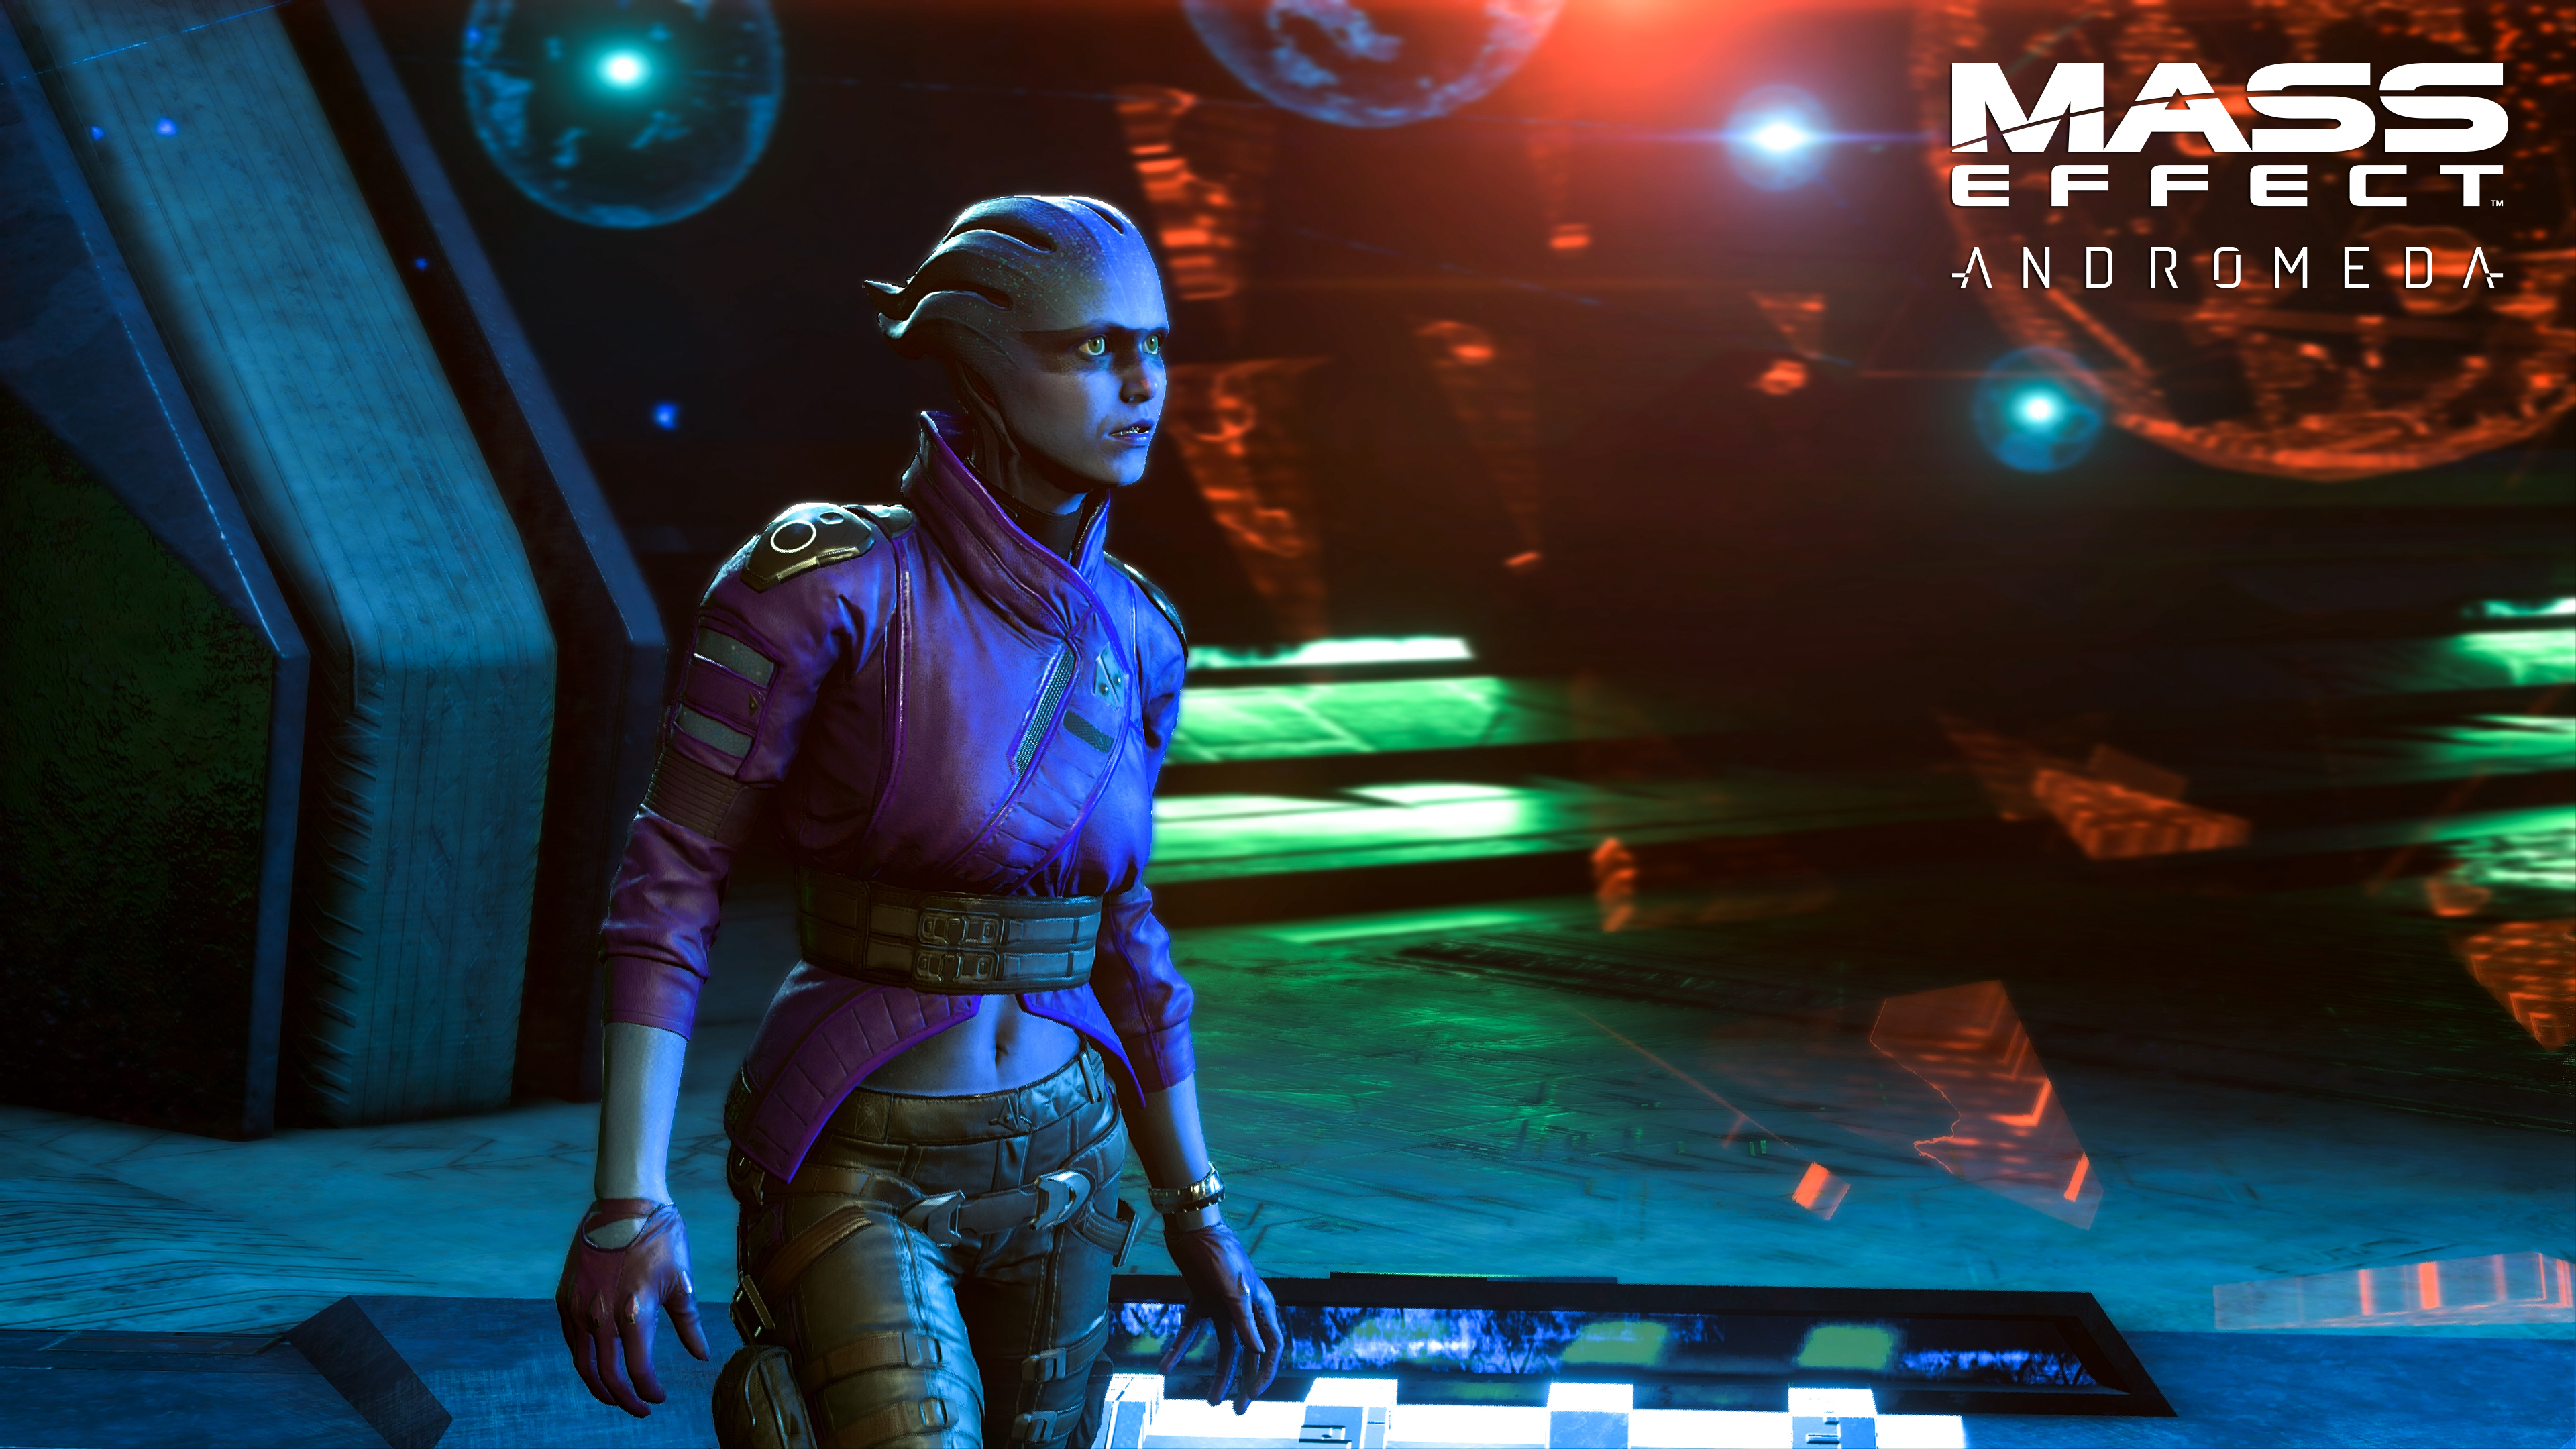 Andromeda Doctor's Note Gets Players a Day Off Work